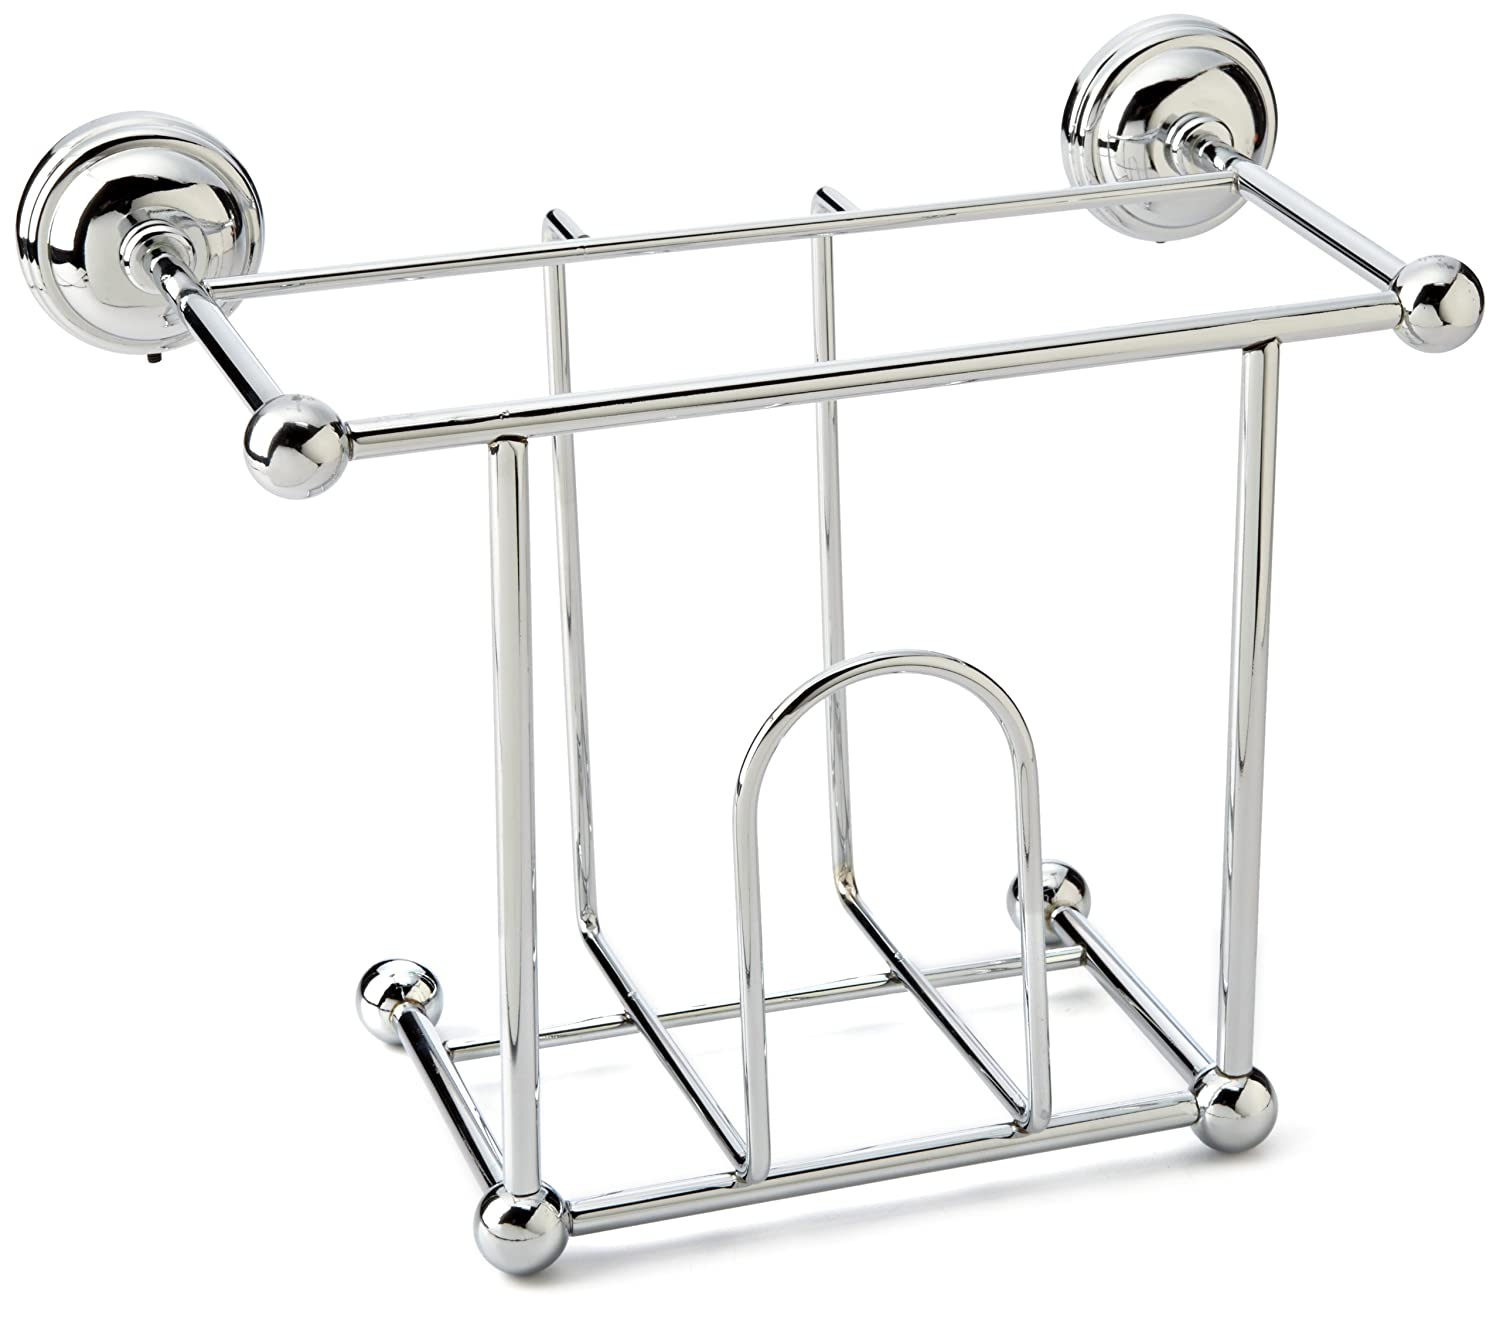 hanging holder modern size diy bathroom india design metal paper storage magazineacks wall with mount chrome target woodack rack toilet magazine roll stirring useful ideas free for caddy homebnc furniture lifewit polished